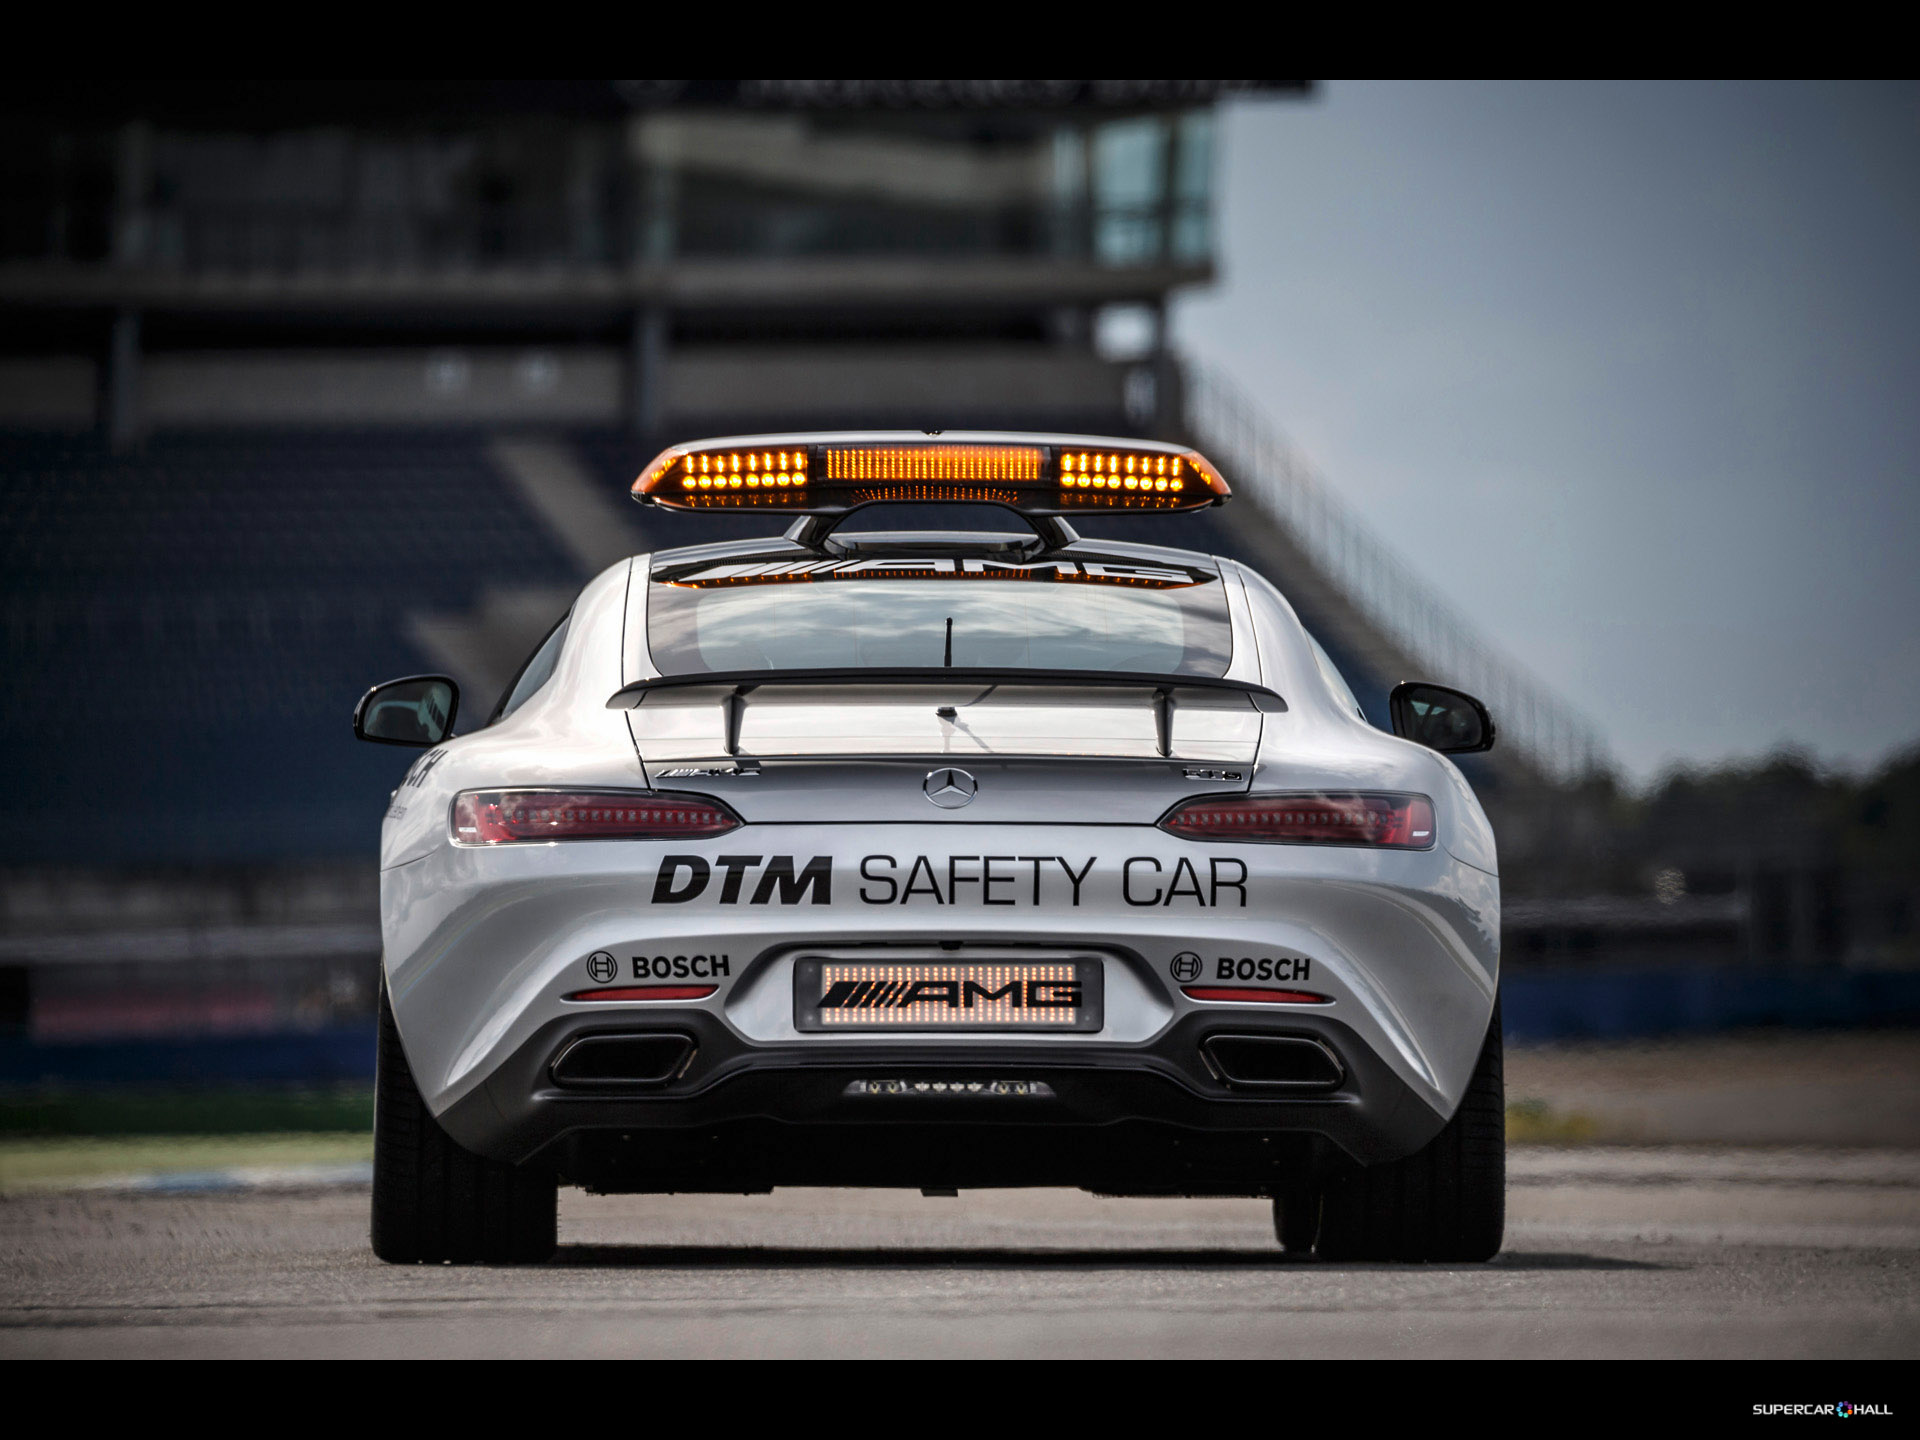 2019 Mercedes Benz AMG GT S F1 Safety Car photo - 6